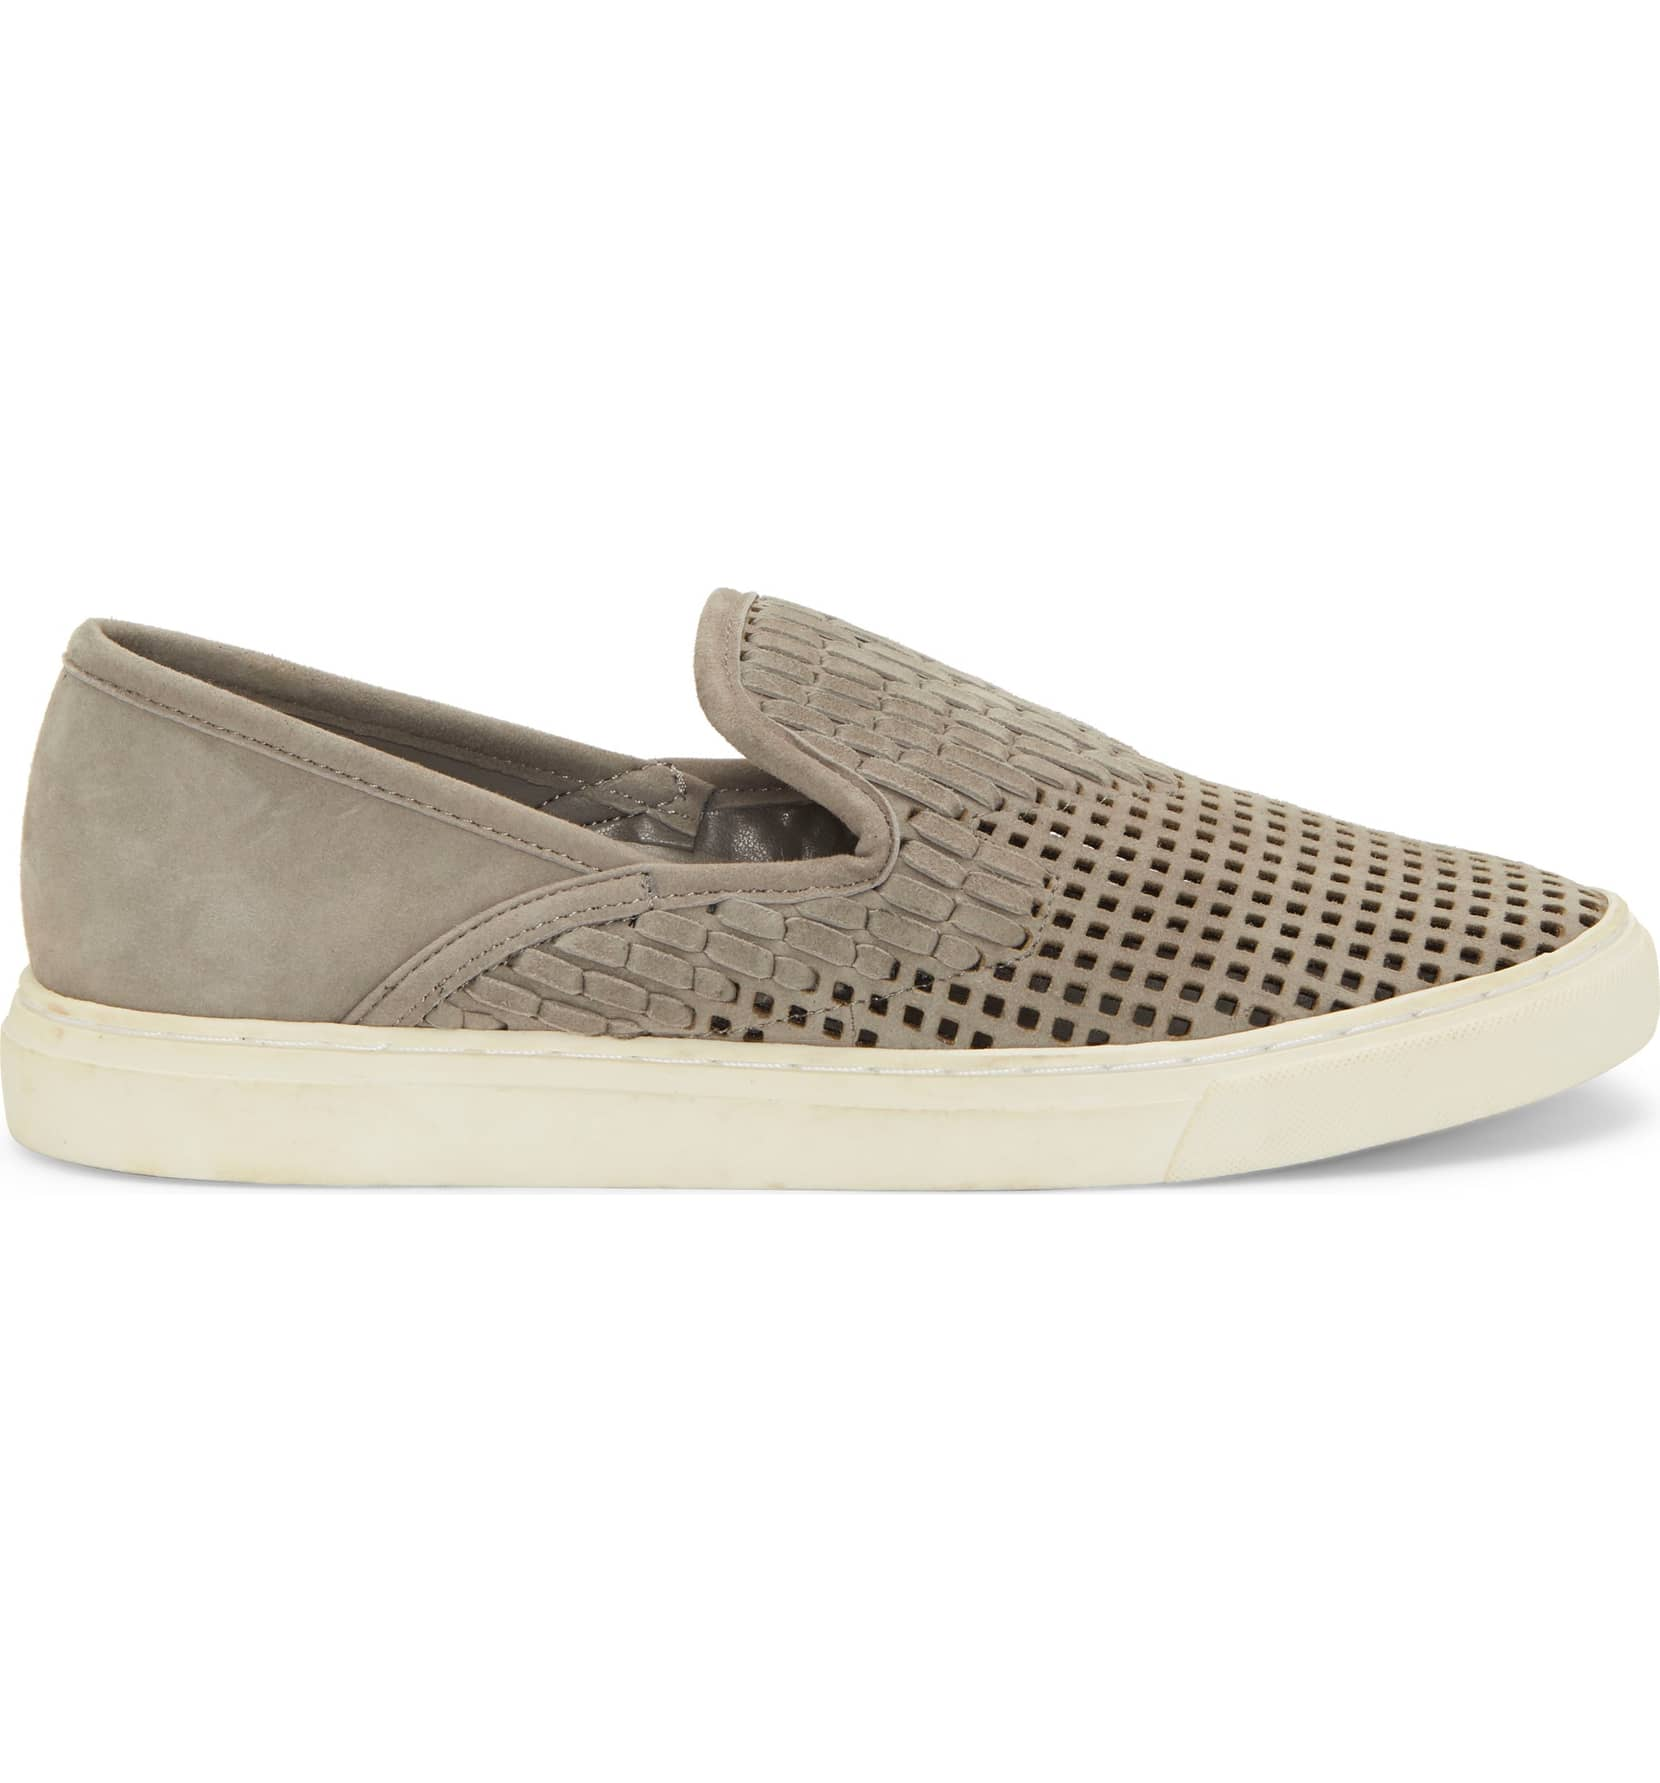 Vince-Camuto-Bristie-Storm-Grey-Leather-Woven-White-Sole-Slip-On-Sneakers thumbnail 48